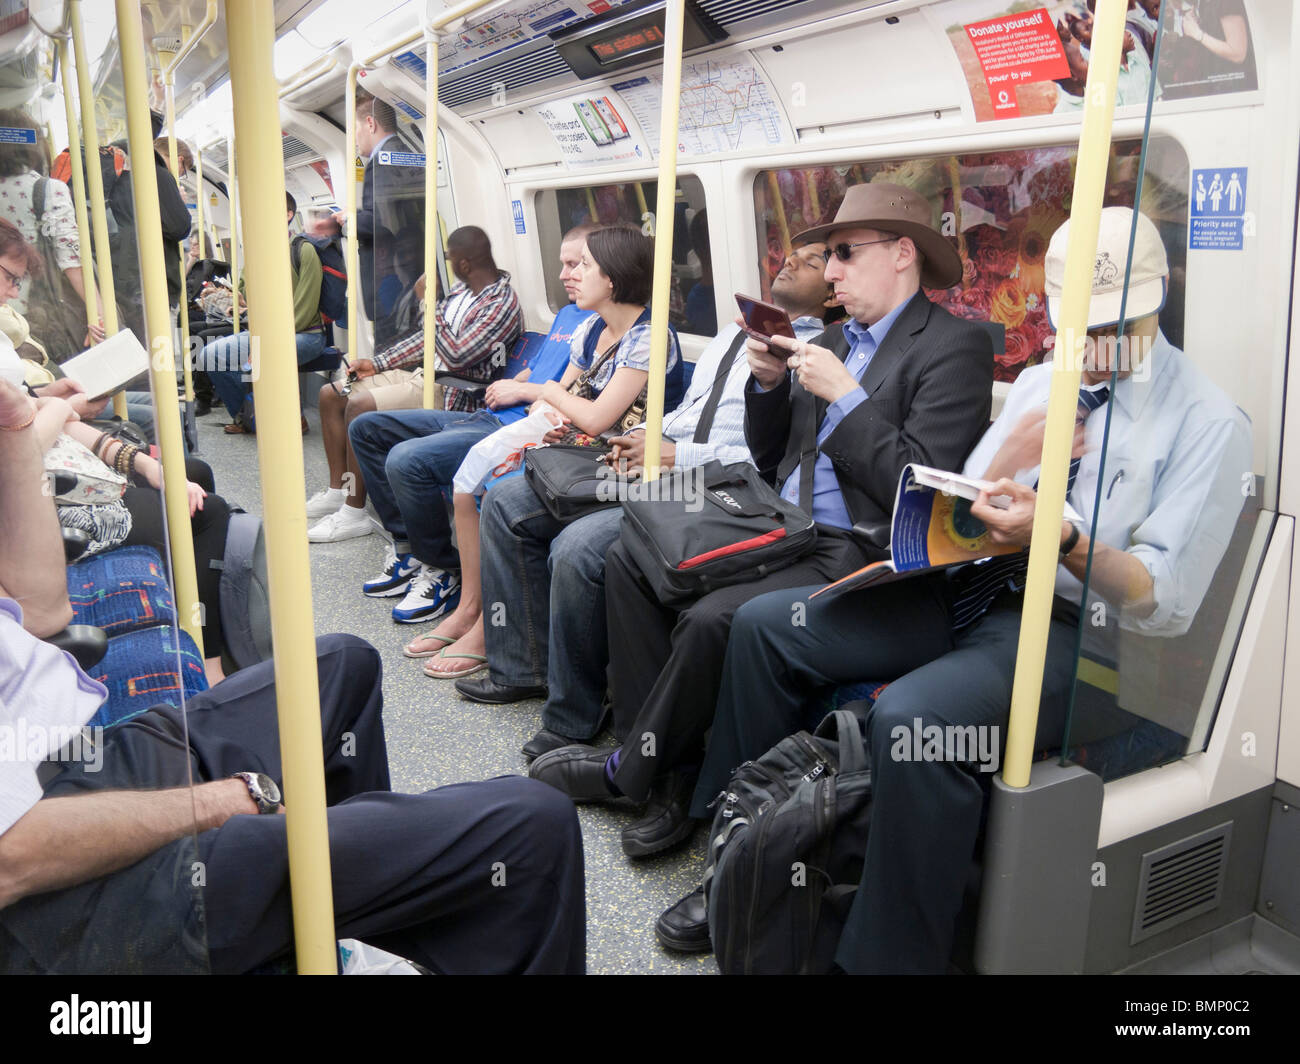 People on the London underground train,London,UK - Stock Image